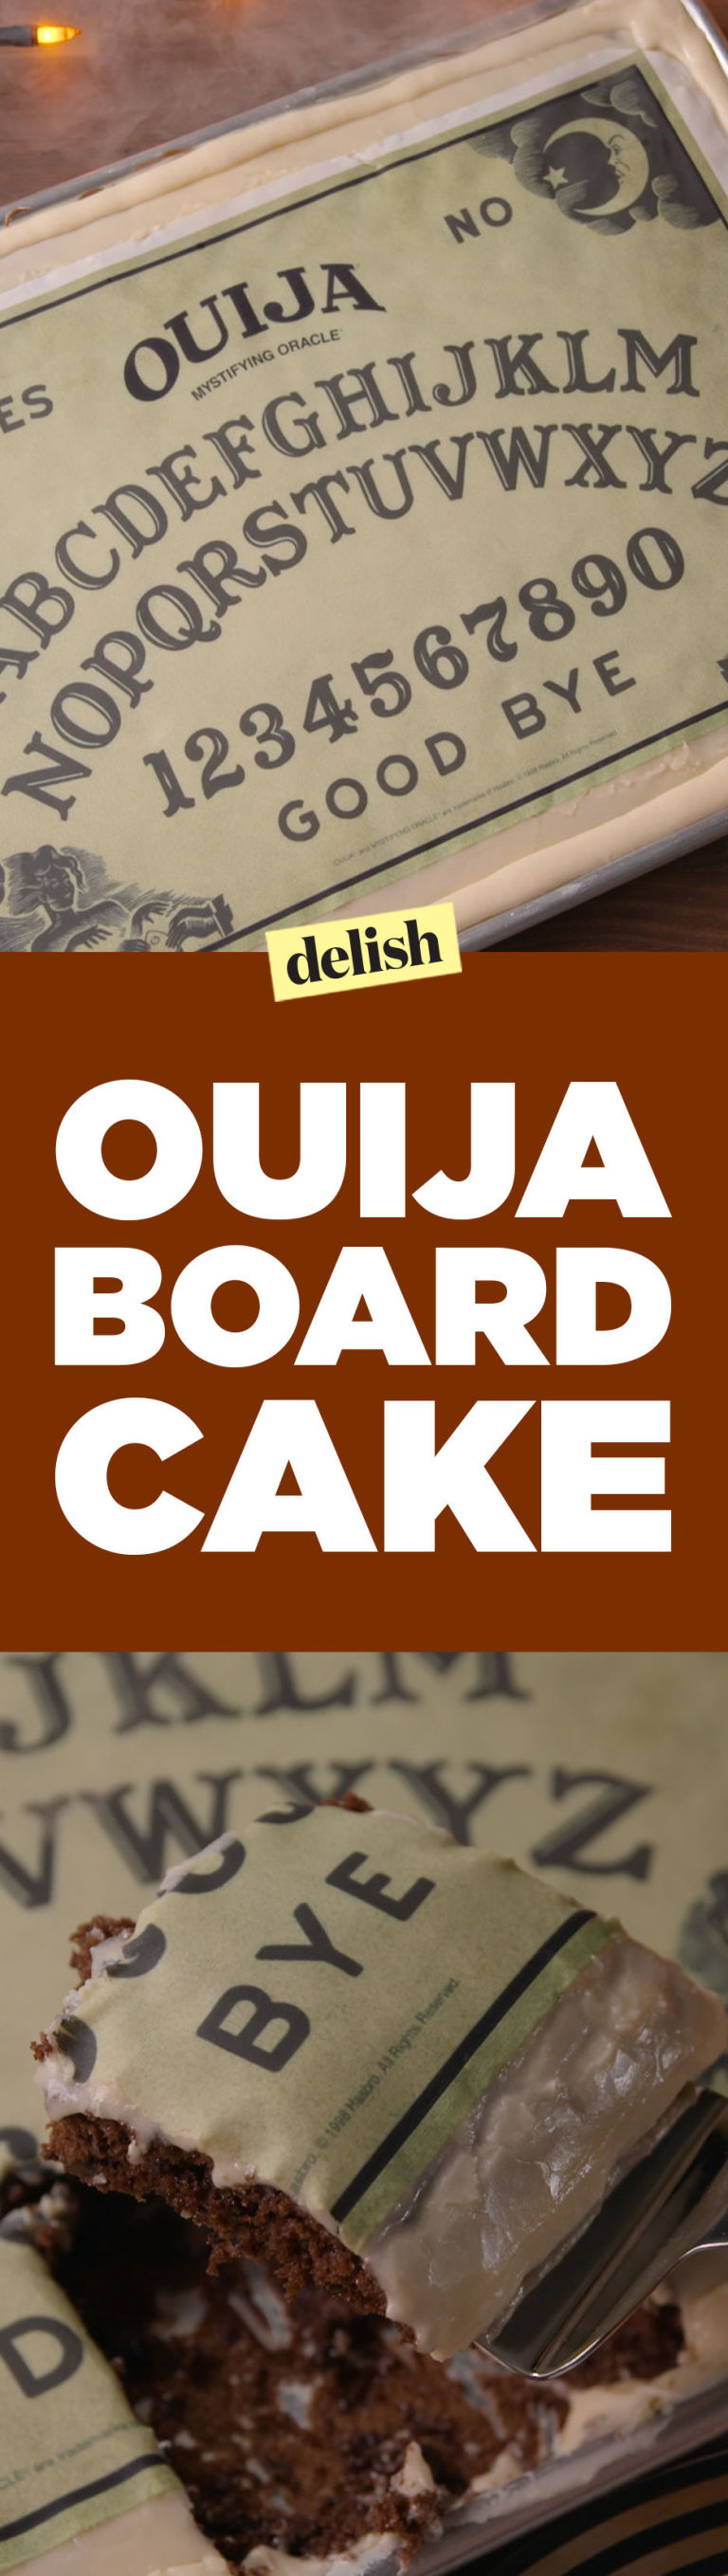 how to make a ouija board cake best halloween party cakes